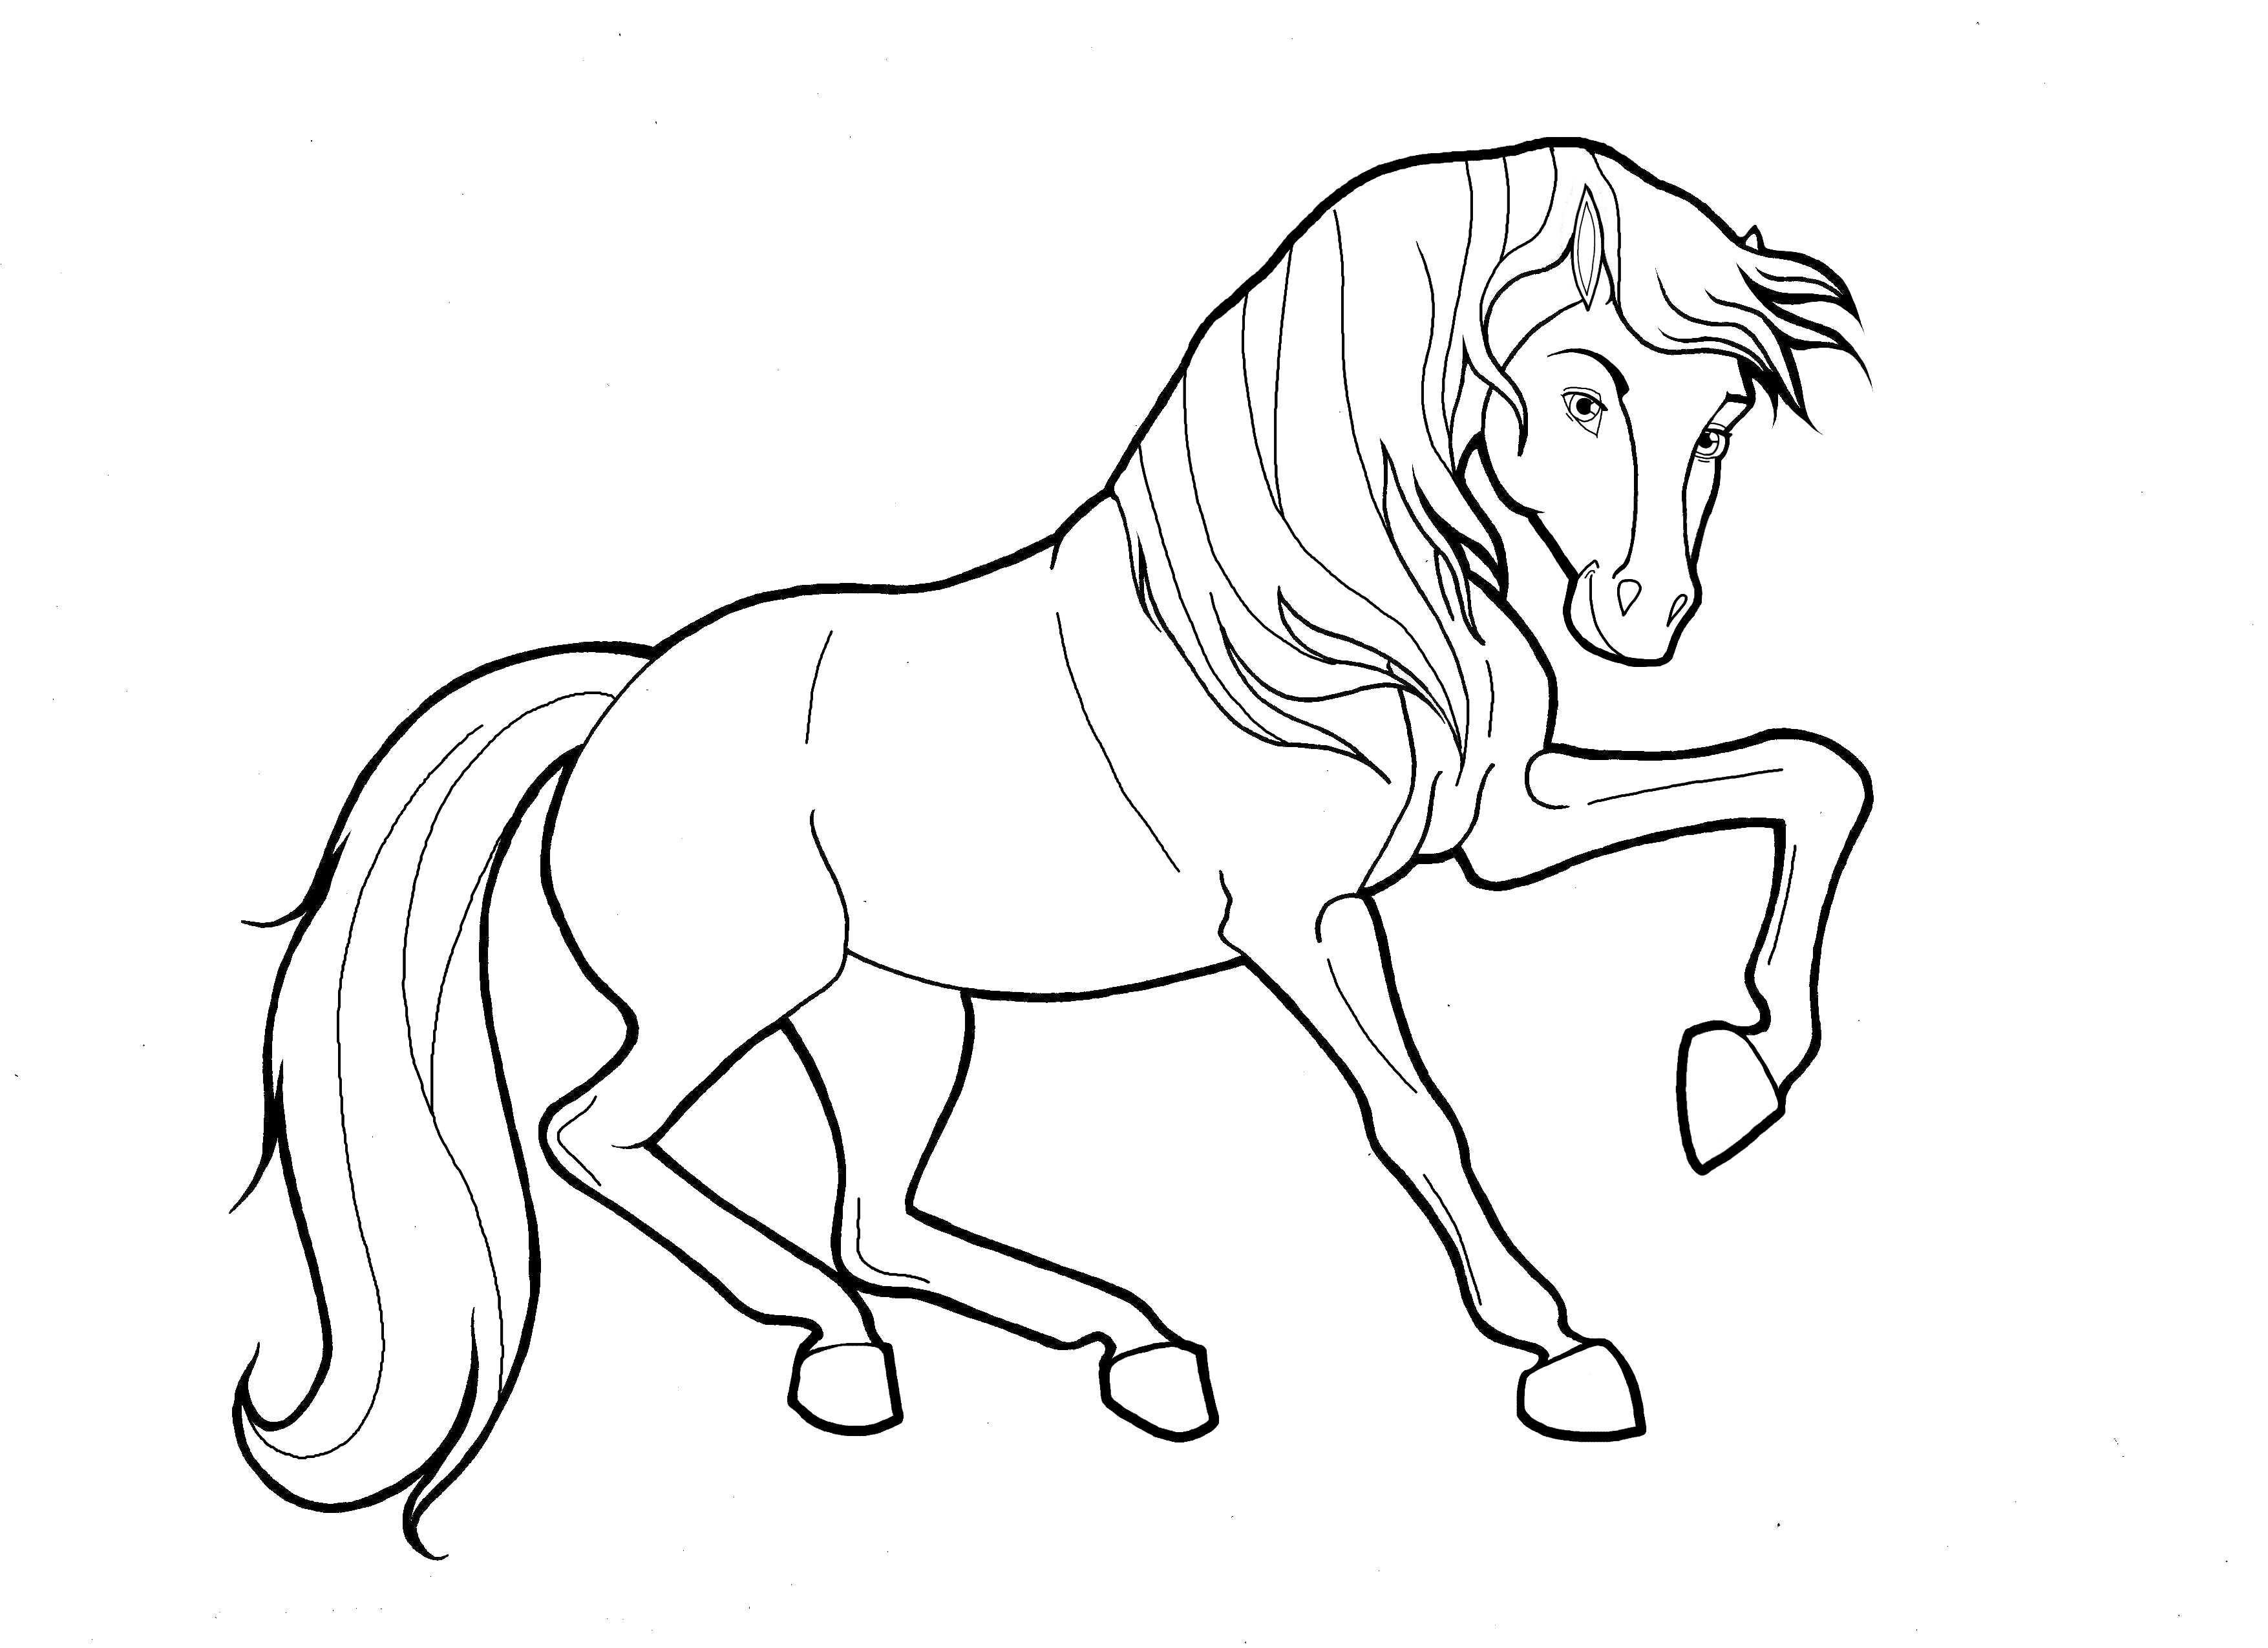 coloring pages of horse 9 inspirational pages to color selah works cindy39s coloring pages of horse